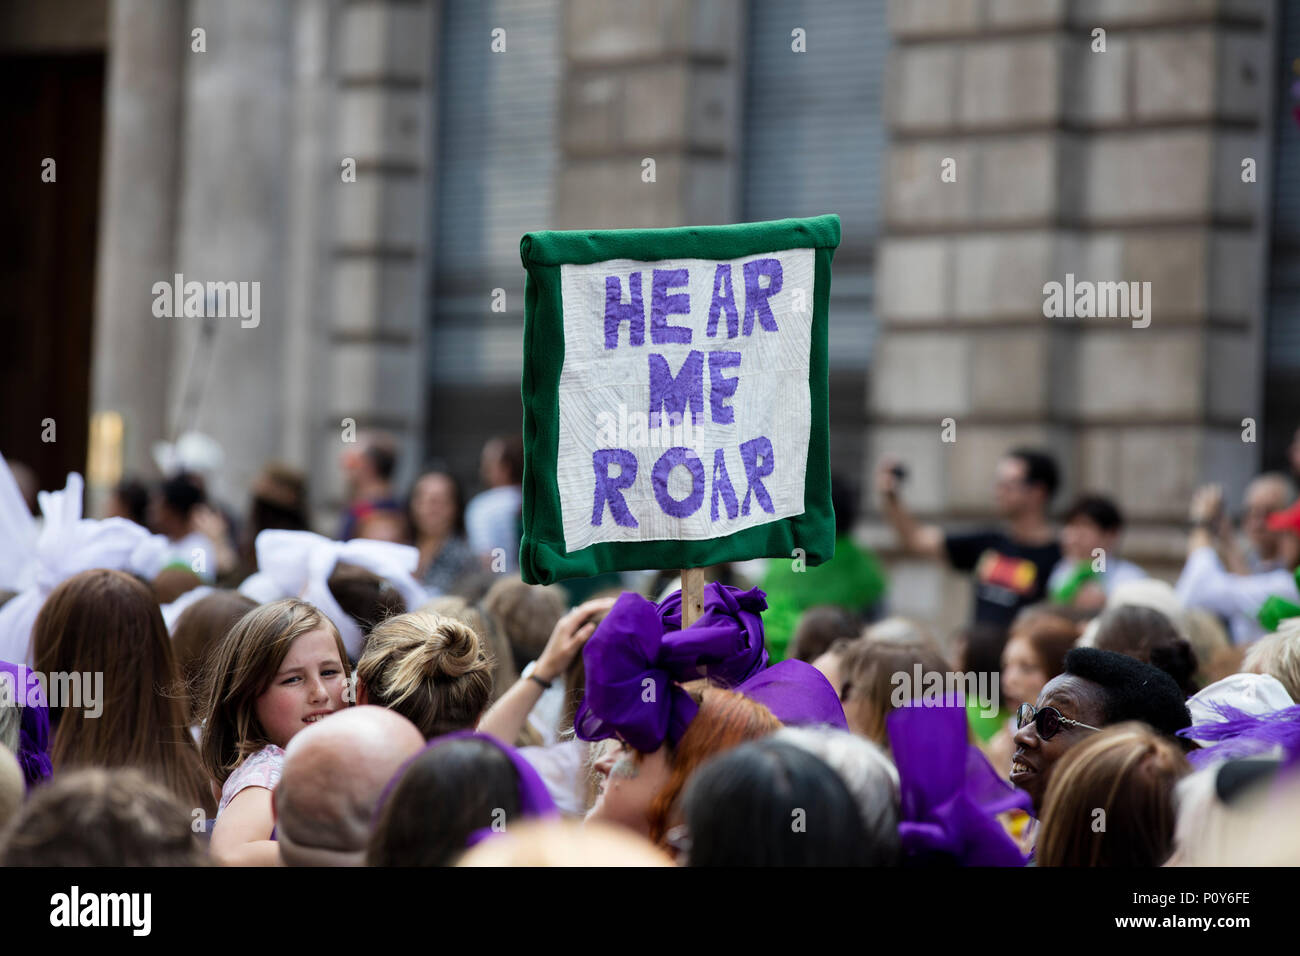 Thousands of woman and girls march in London celebrating 100 years of the women's vote and gender equality, organised by 14-18 Now and artichoke. Credit: Ink Drop/Alamy Live News - Stock Image